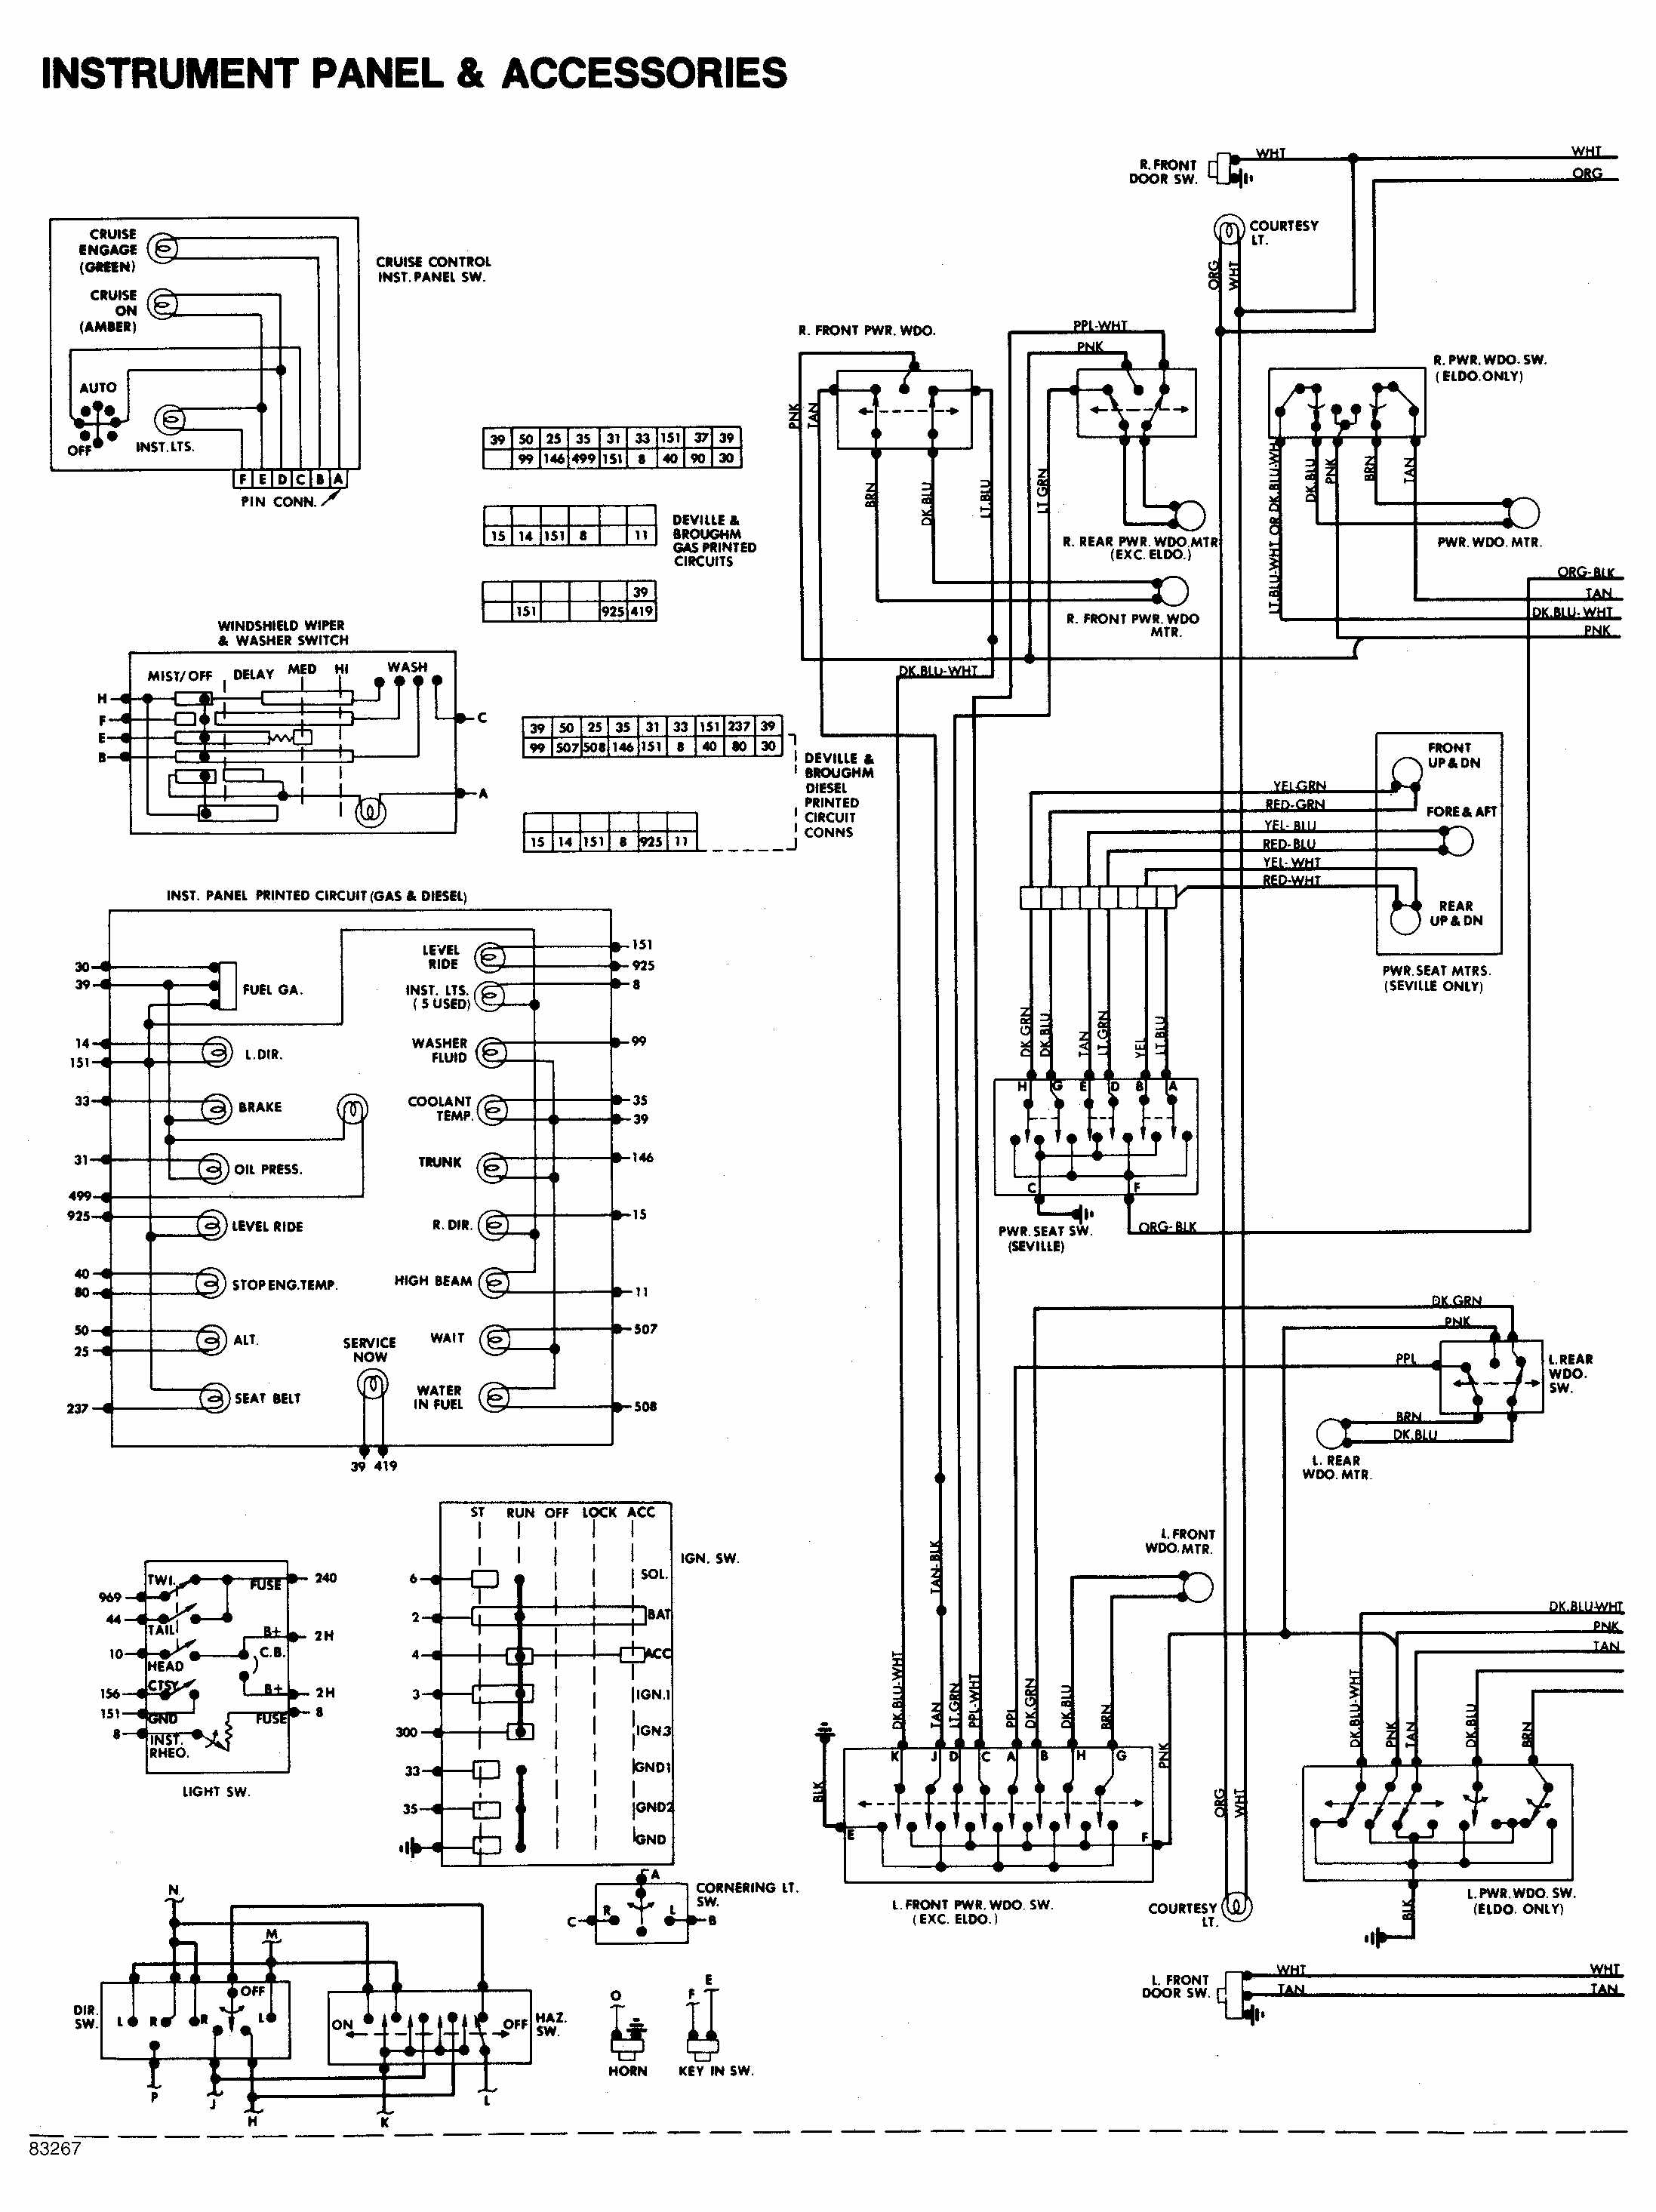 2003 Oldsmobile Silhouette Electrical Wiring Schematic